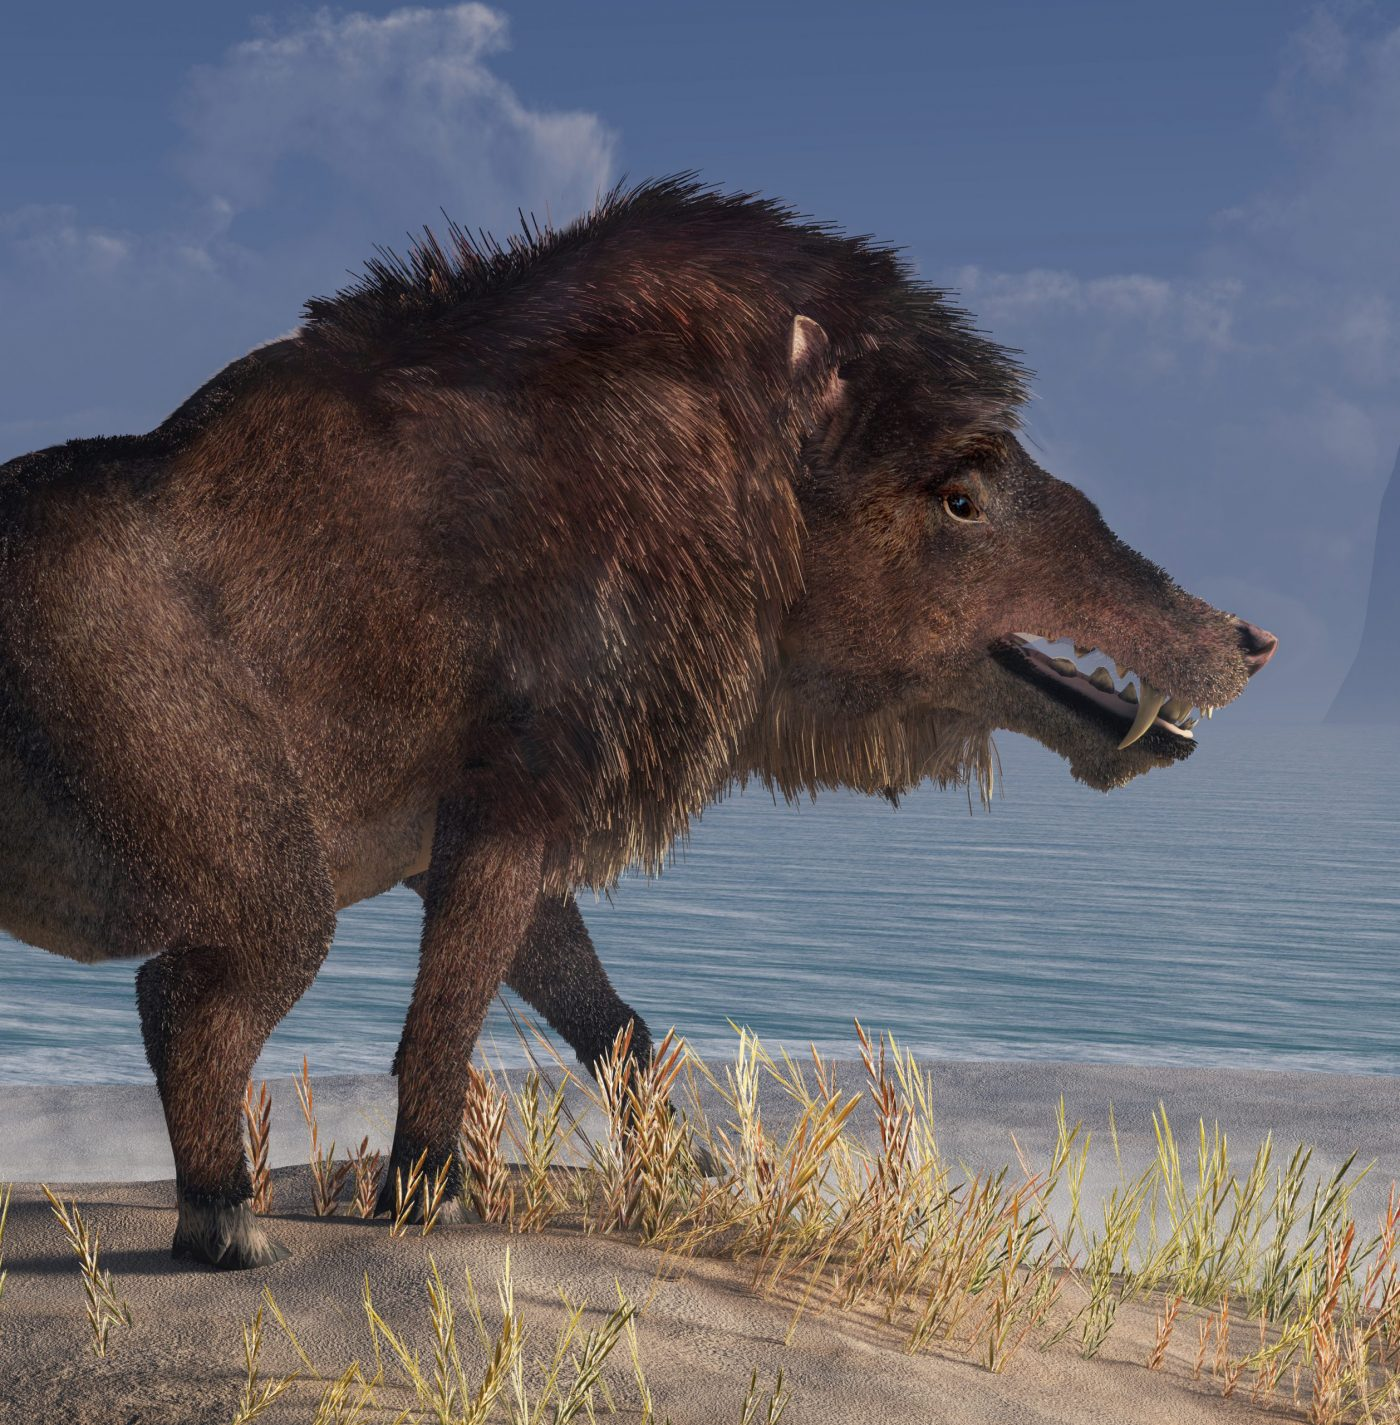 Andrewsarchus, an extinct creature of the Eocene period, was possibly the largest carnivorous land mammal ever, known only from a single fossil skull found in Mongolia. 3D Rendering.